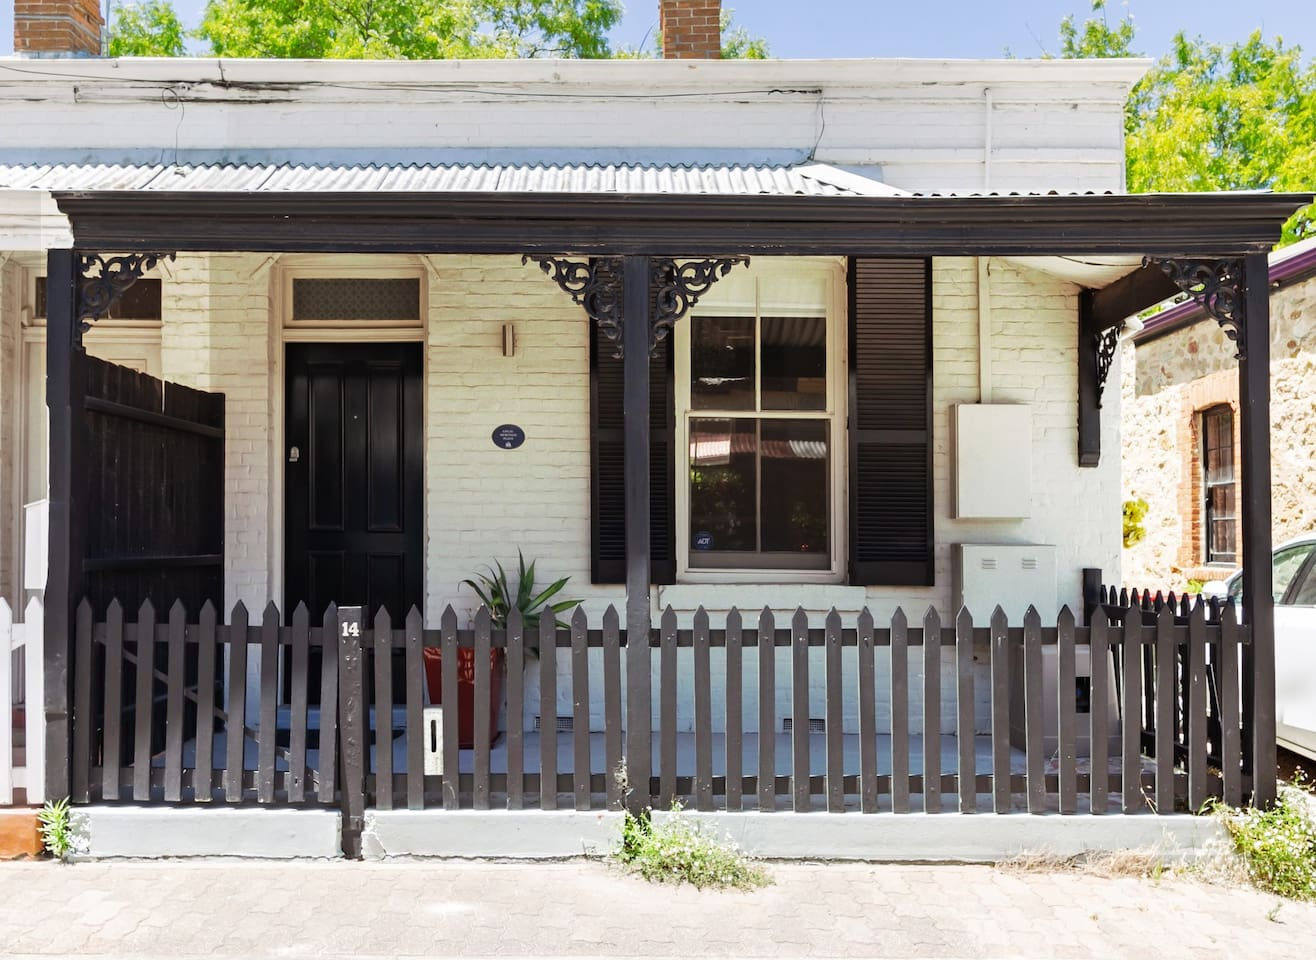 Historical Adelaide City cottage with an architecturally designed renovation.